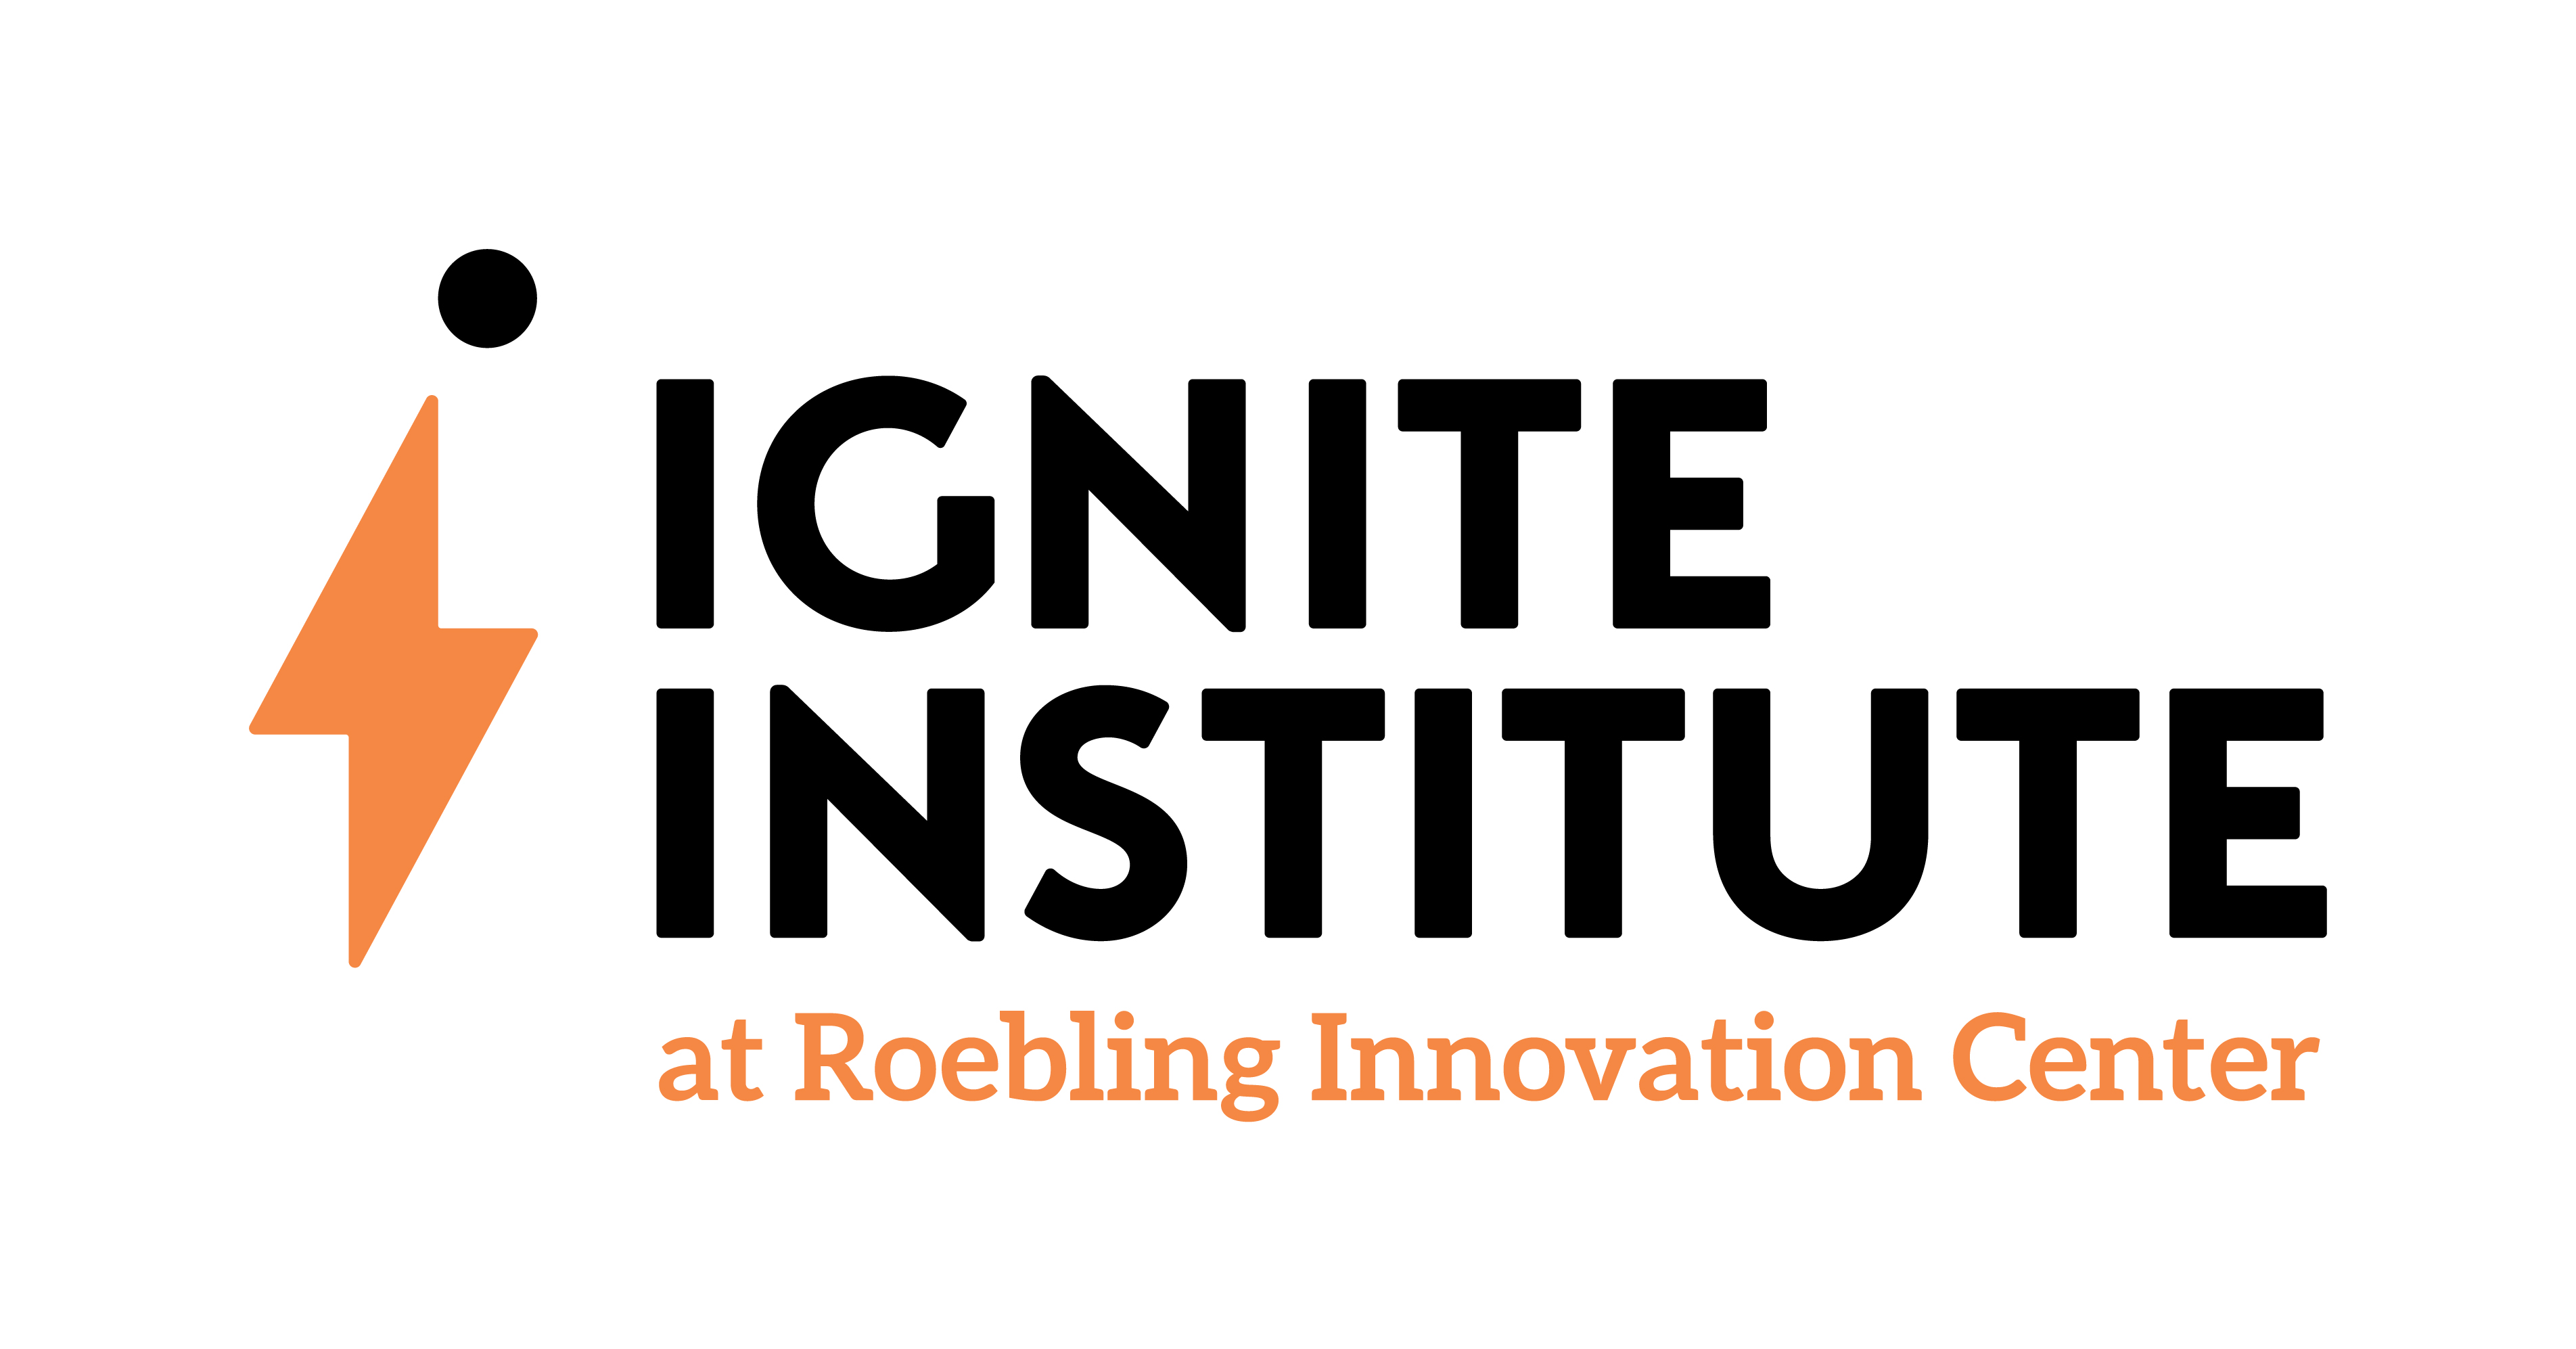 ignite institute